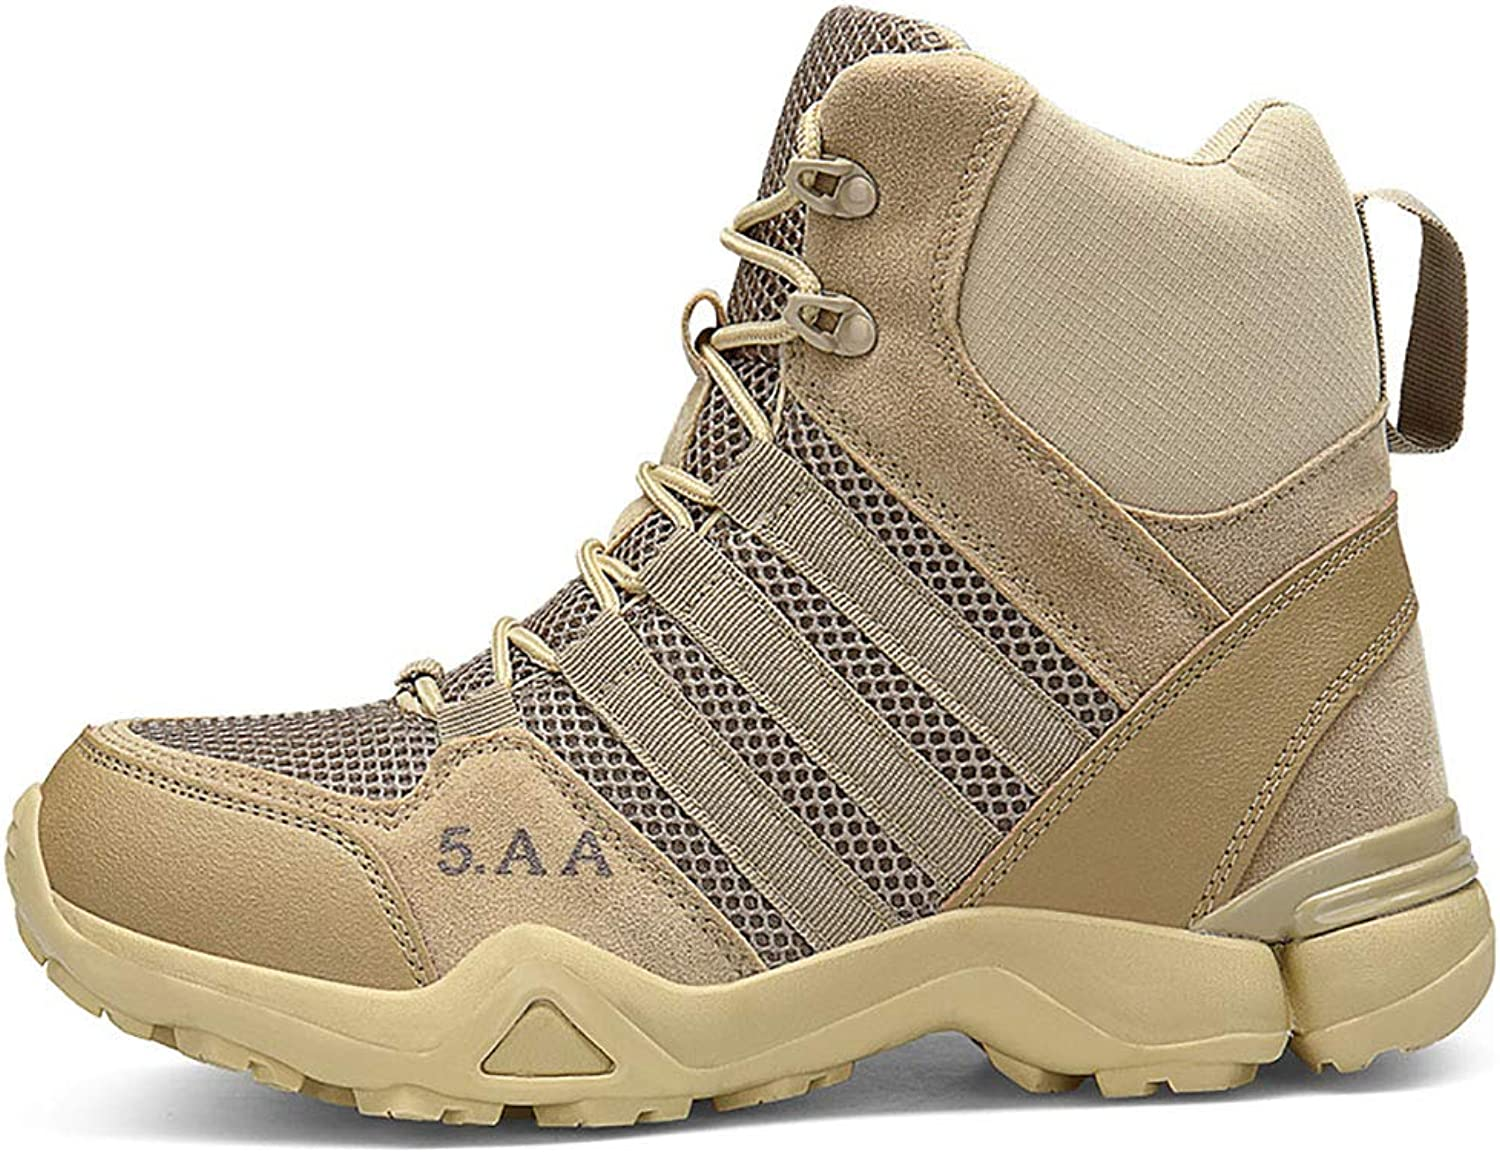 Men's shoes 2018 Boots Comfort Lining High-Top Casual shoes Lace Up High Boots Non-Slip Outdoor Military Boots,Beige,39